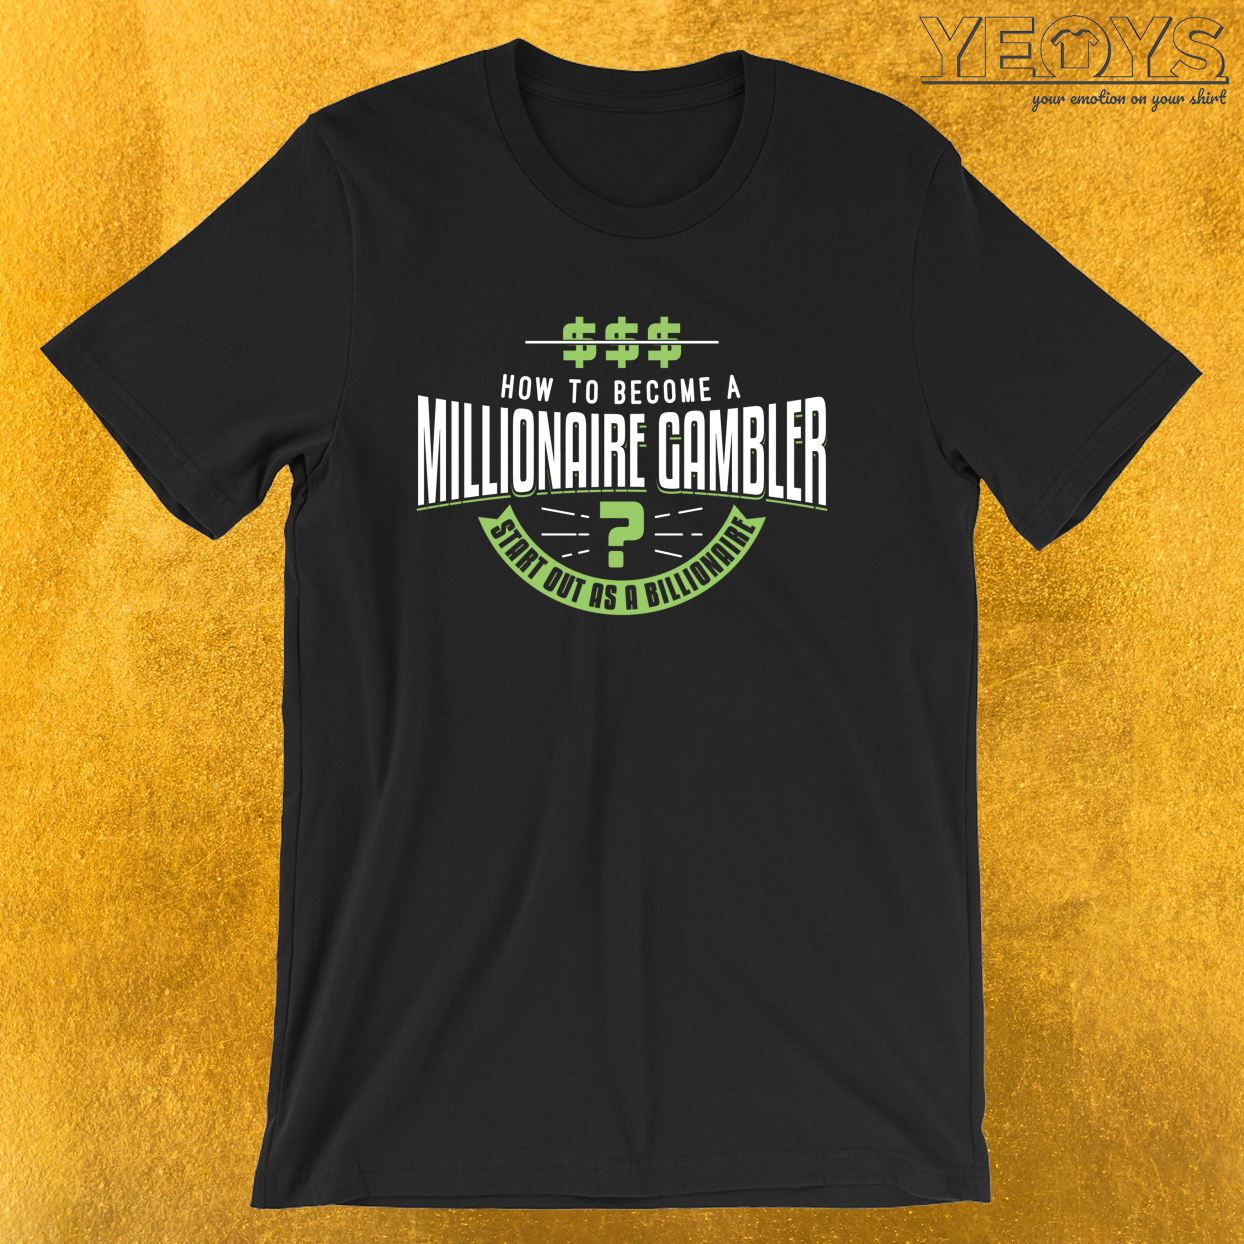 How To Become A Millionaire Gambler – Gambling Problem Tee